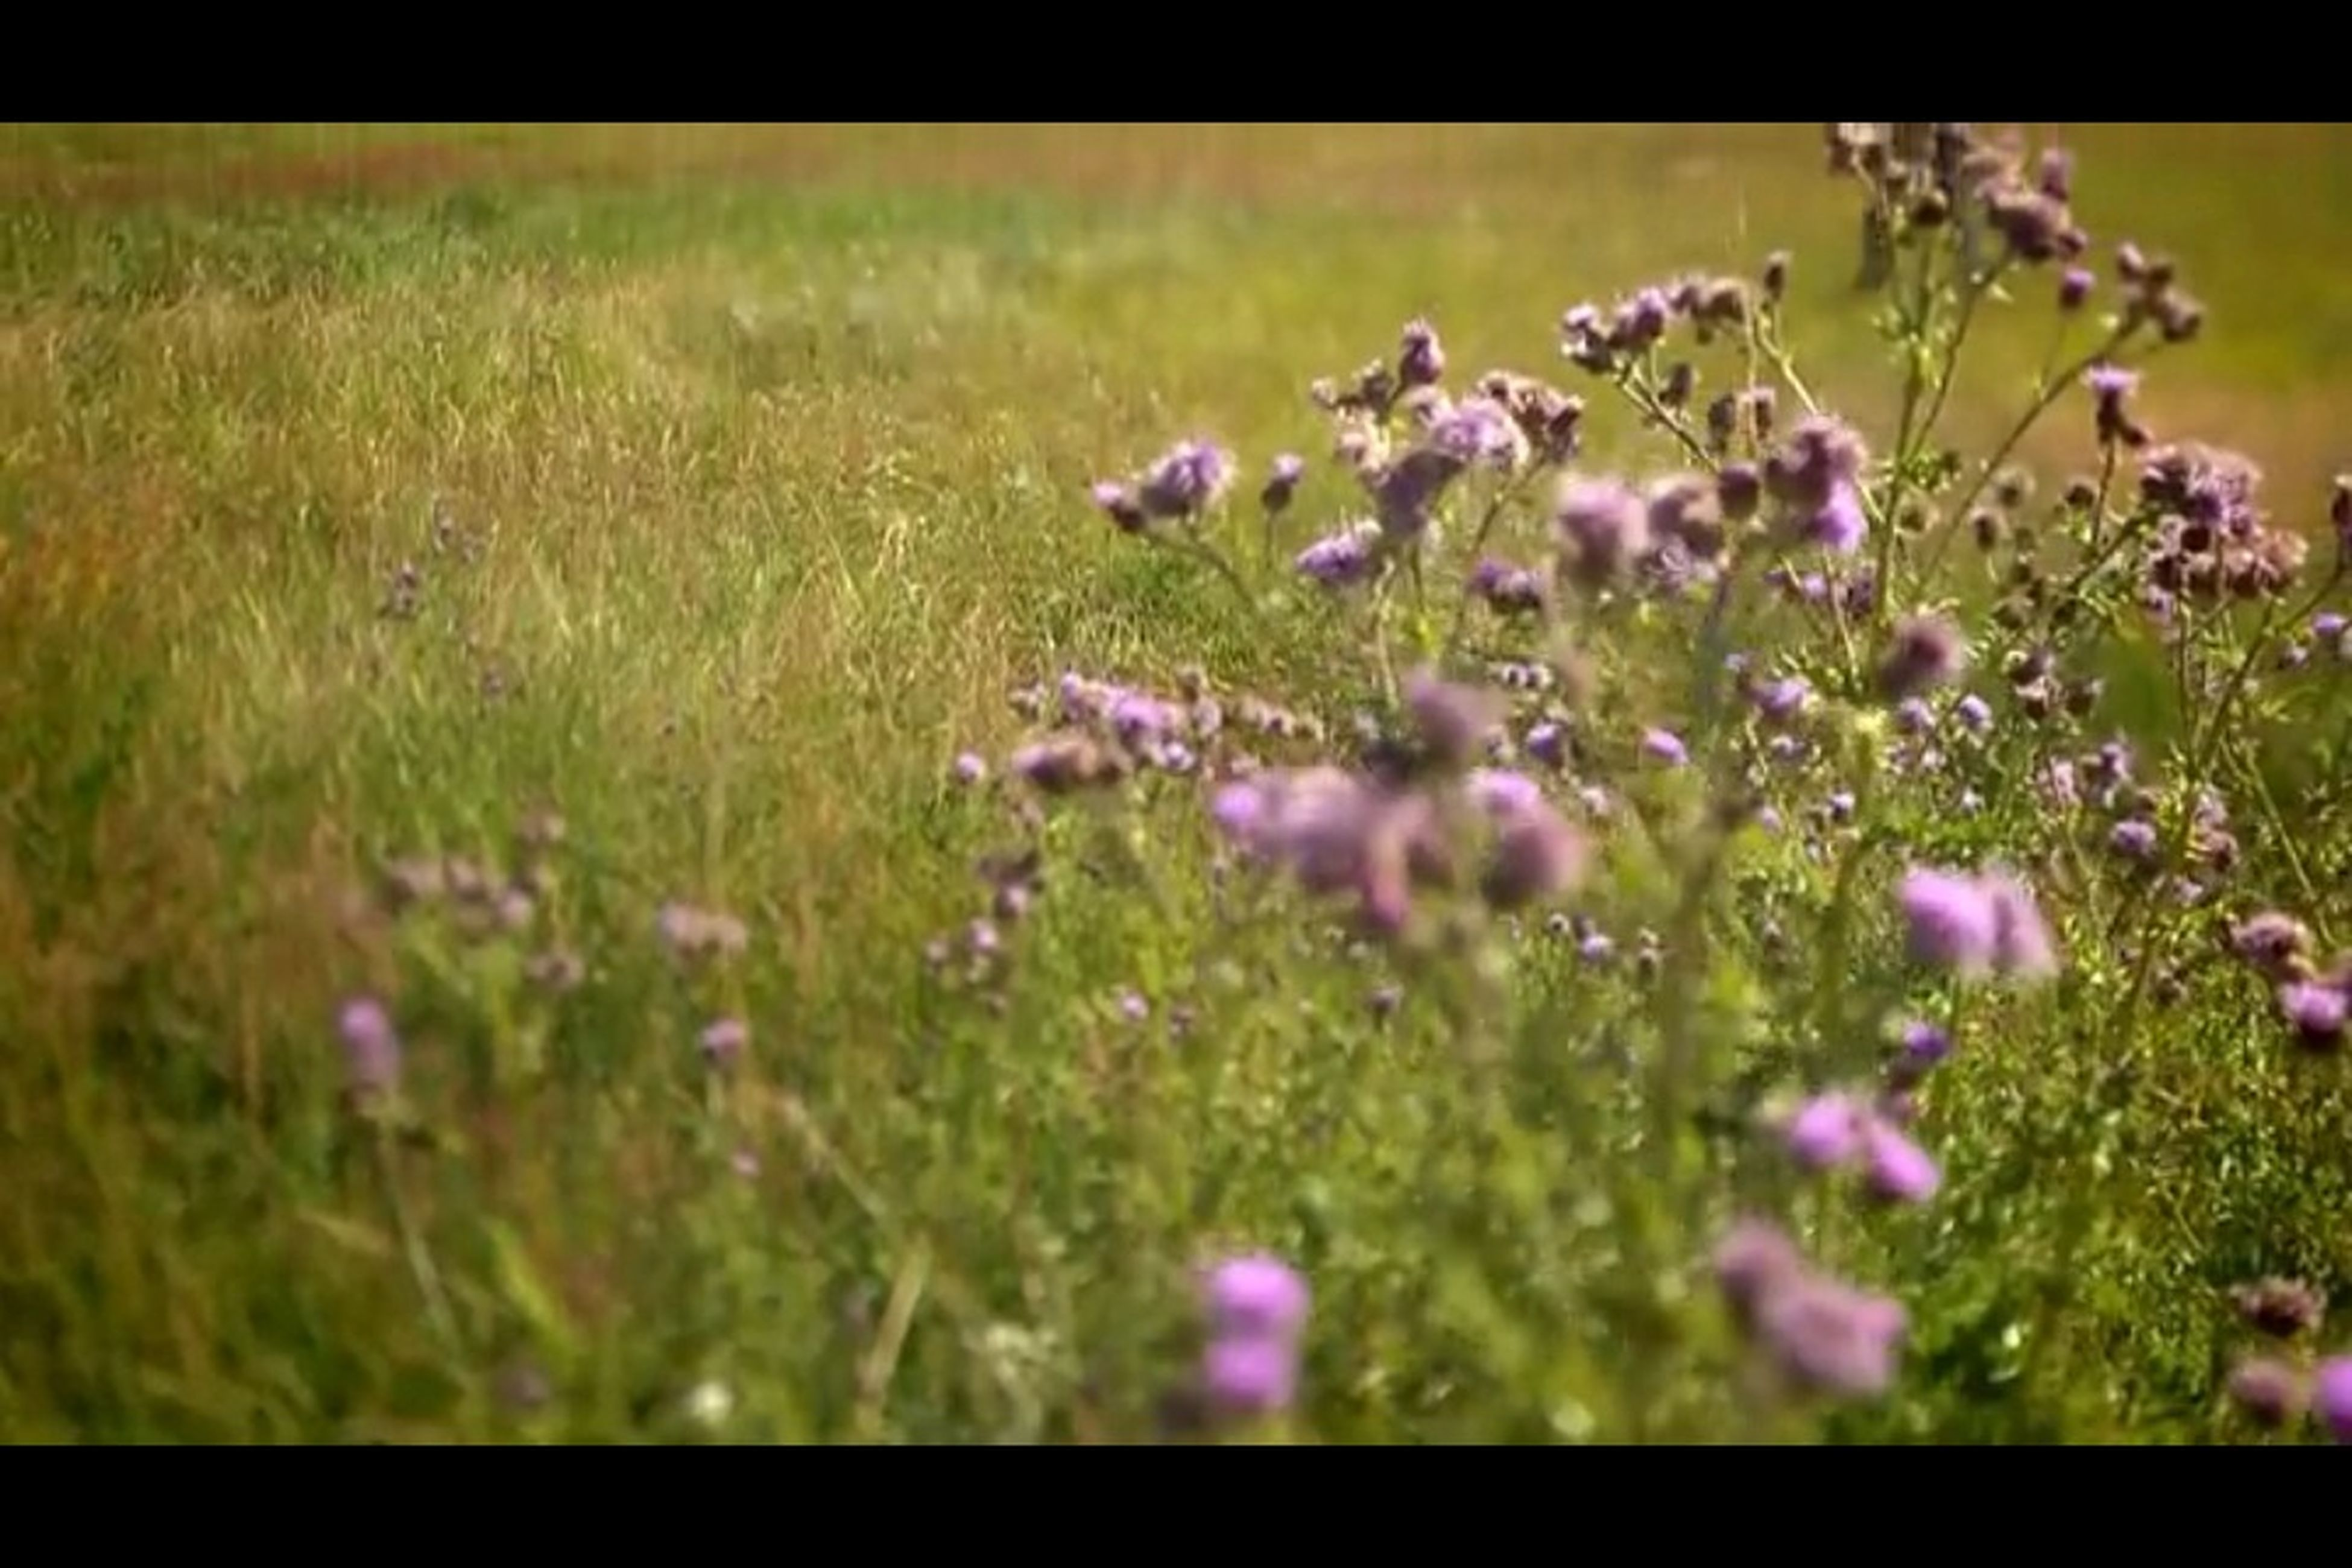 flower, transfer print, freshness, growth, field, fragility, beauty in nature, auto post production filter, nature, plant, grass, purple, blooming, selective focus, wildflower, focus on foreground, petal, meadow, flower head, close-up